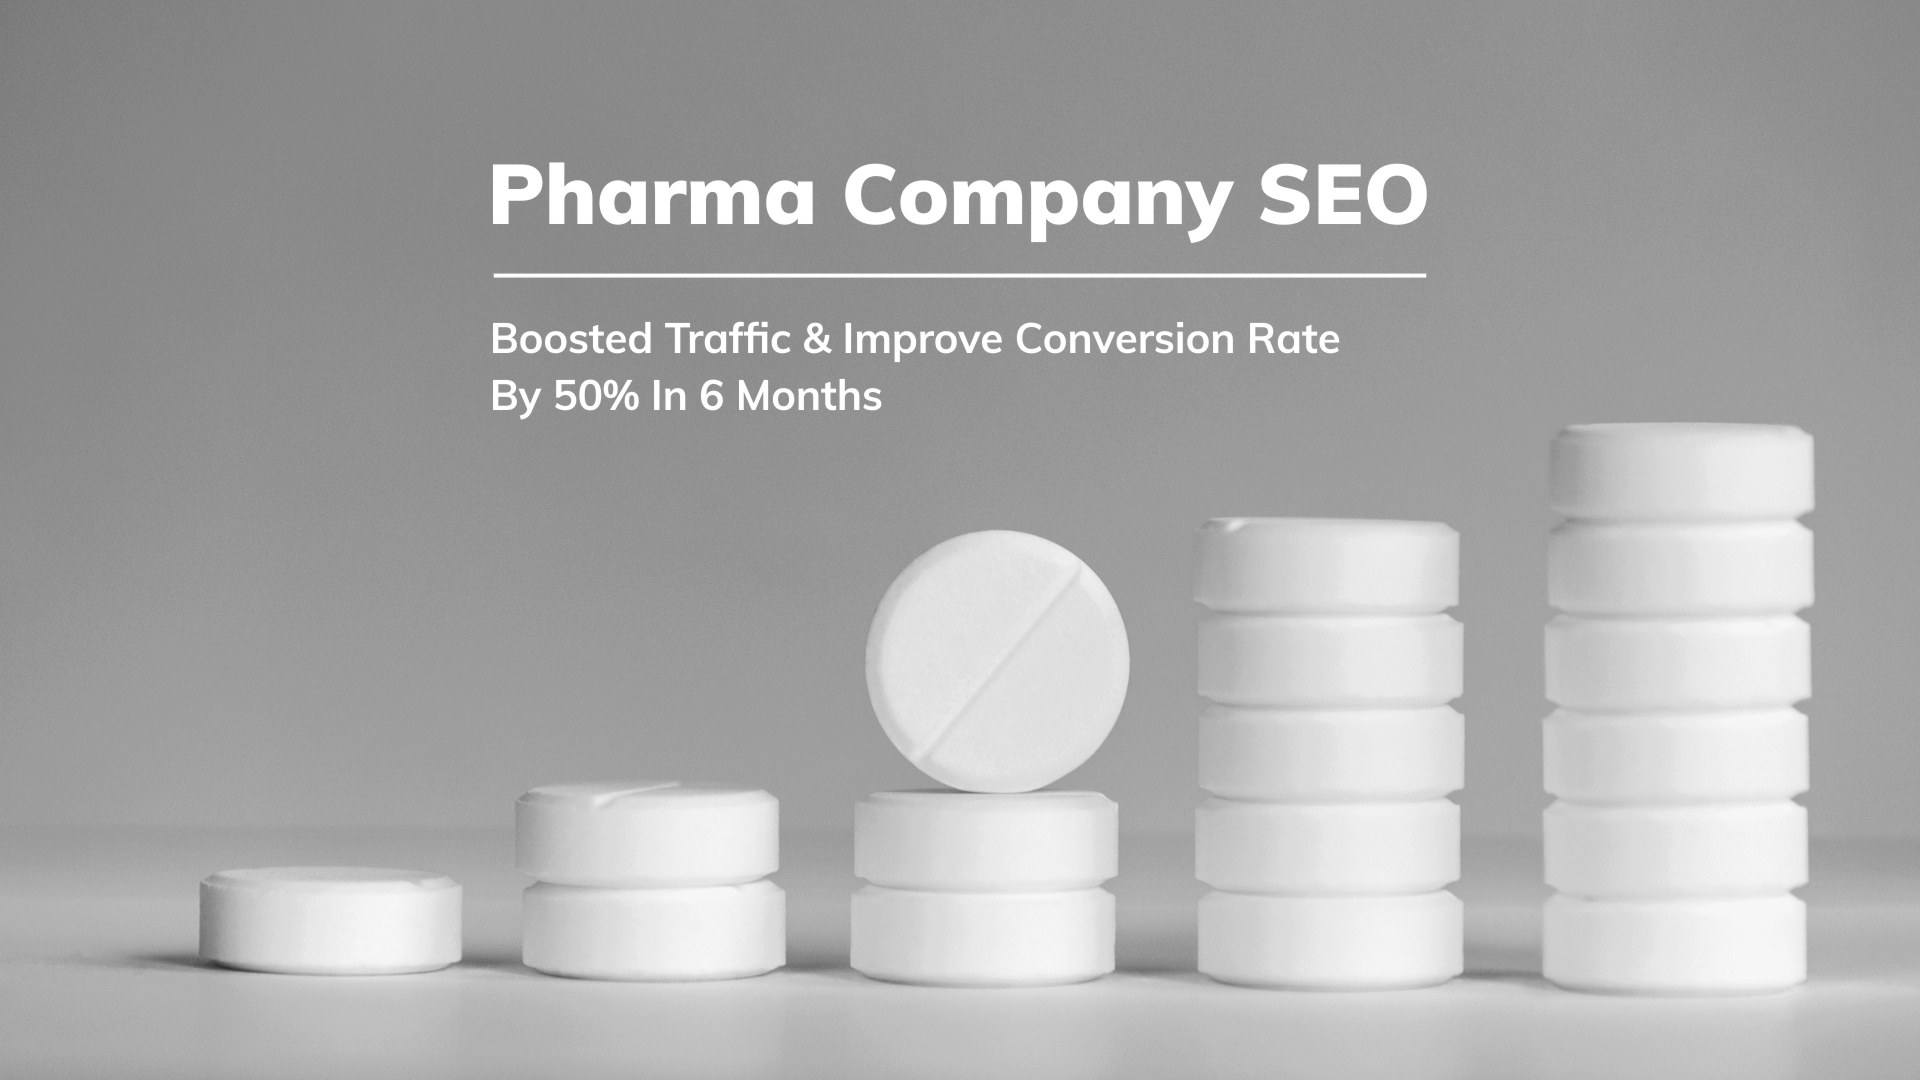 Pharma Company SEO Boosted Traffic Improve Conversion Rate By 50 In 6 Months